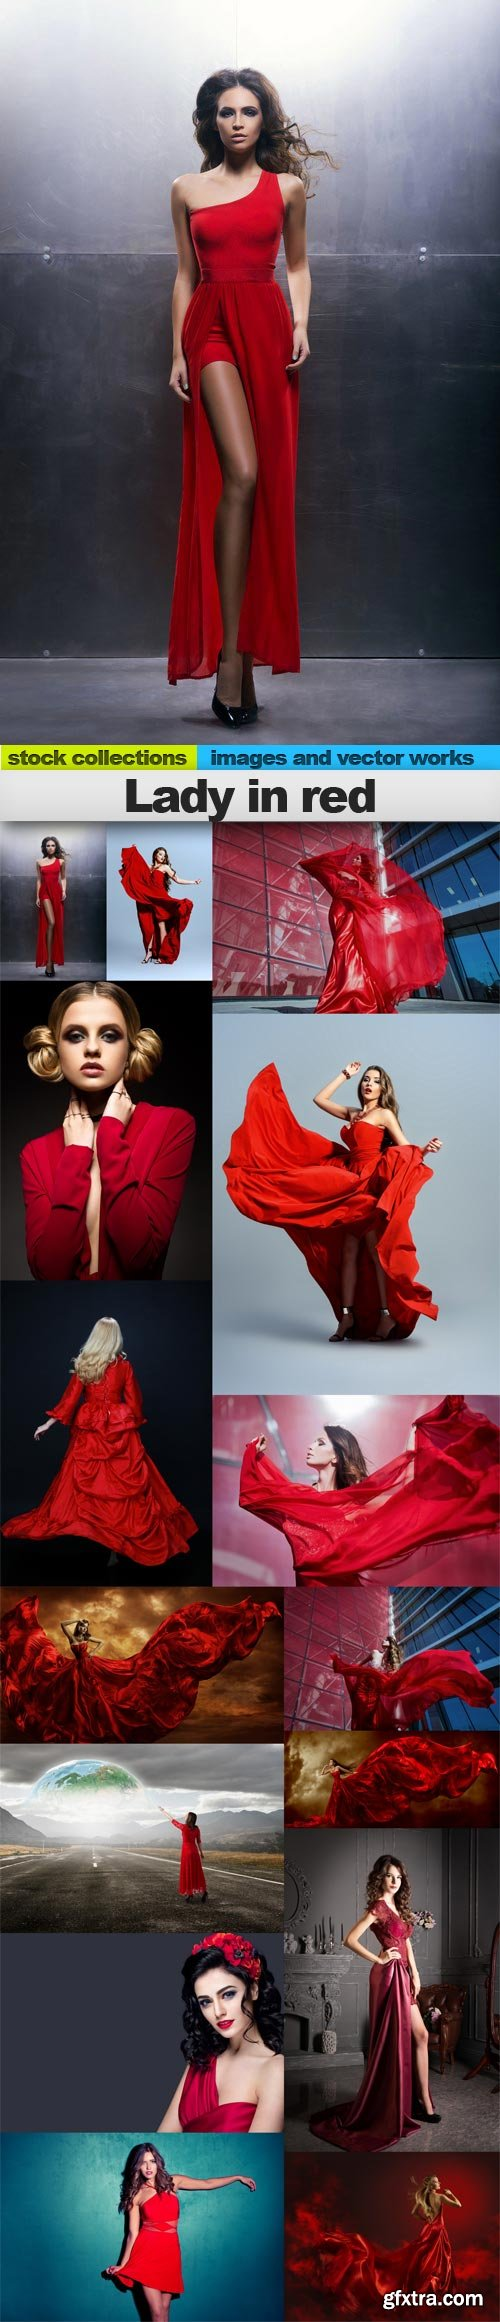 Lady in red, 15 x UHQ JPEG